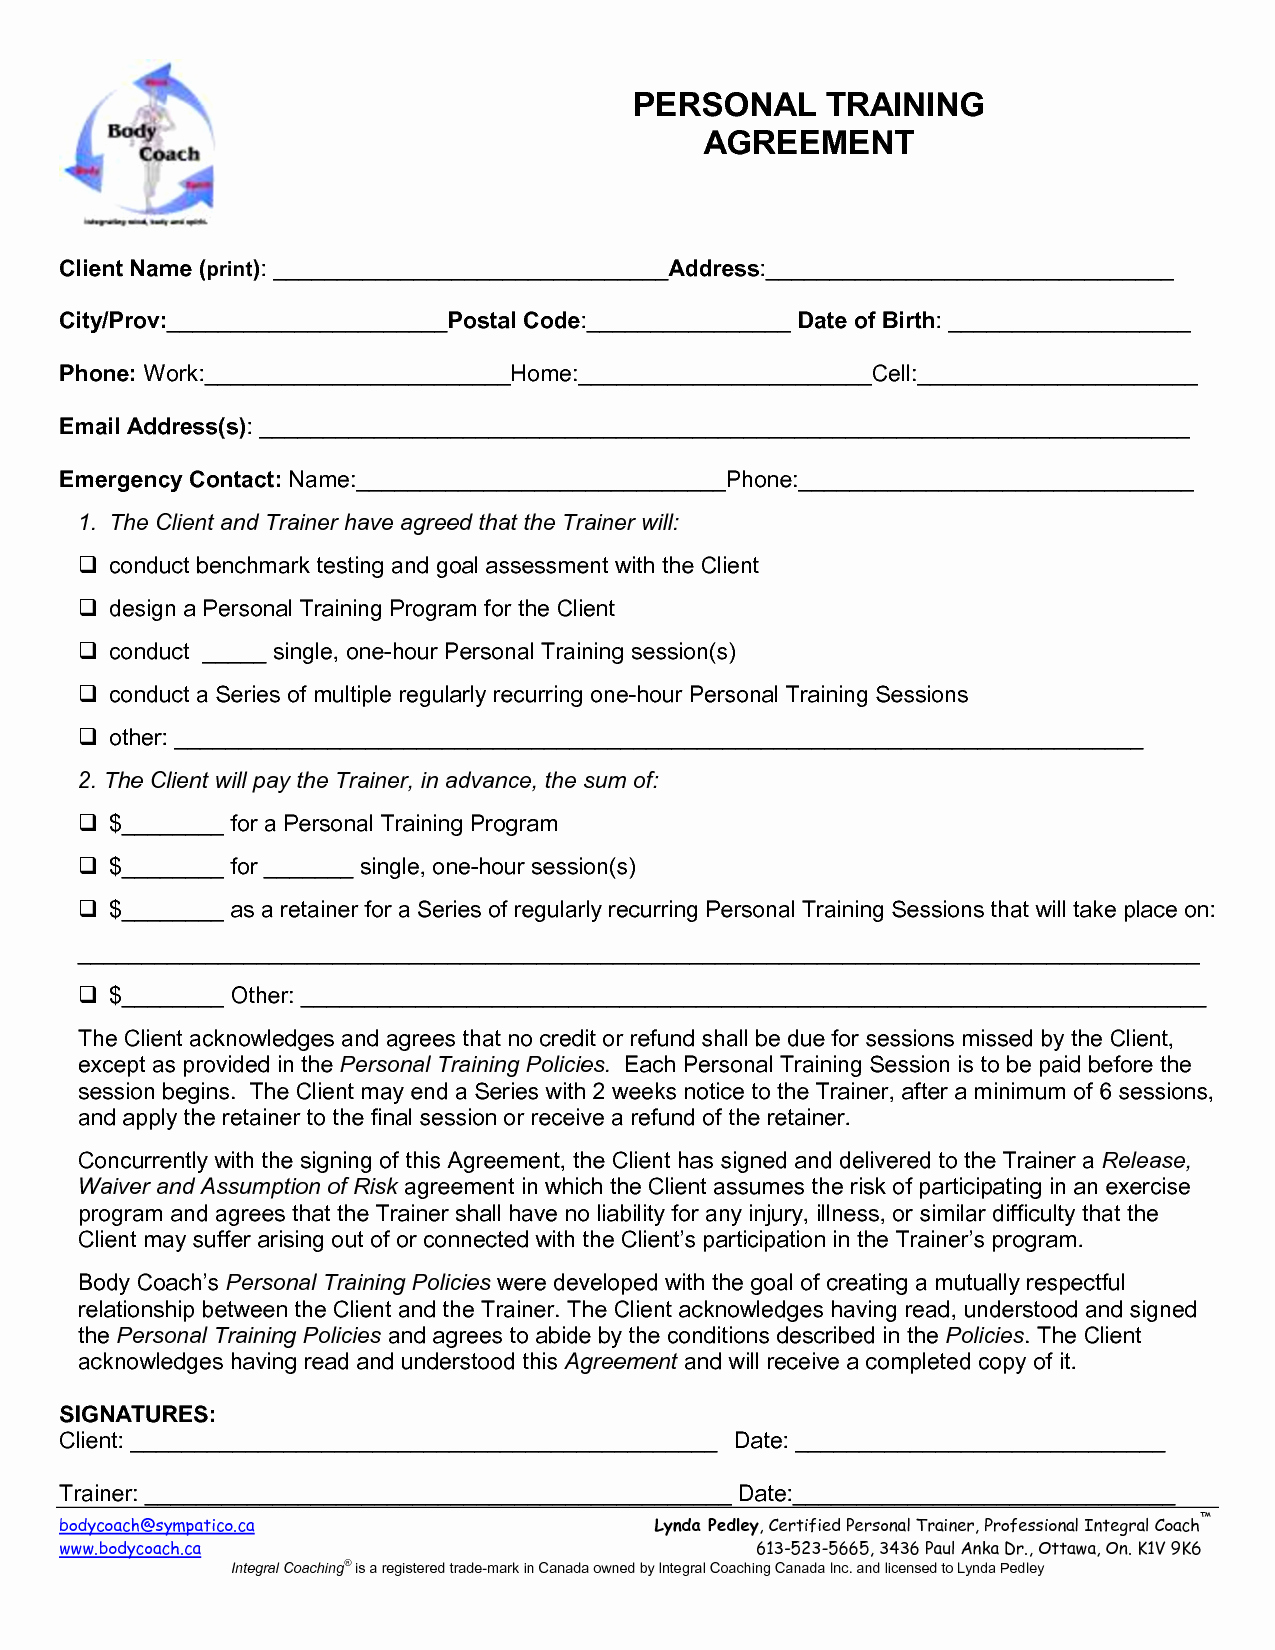 Personal Training Agreement Template Lovely Personal Training Contract Template Free Printable Documents